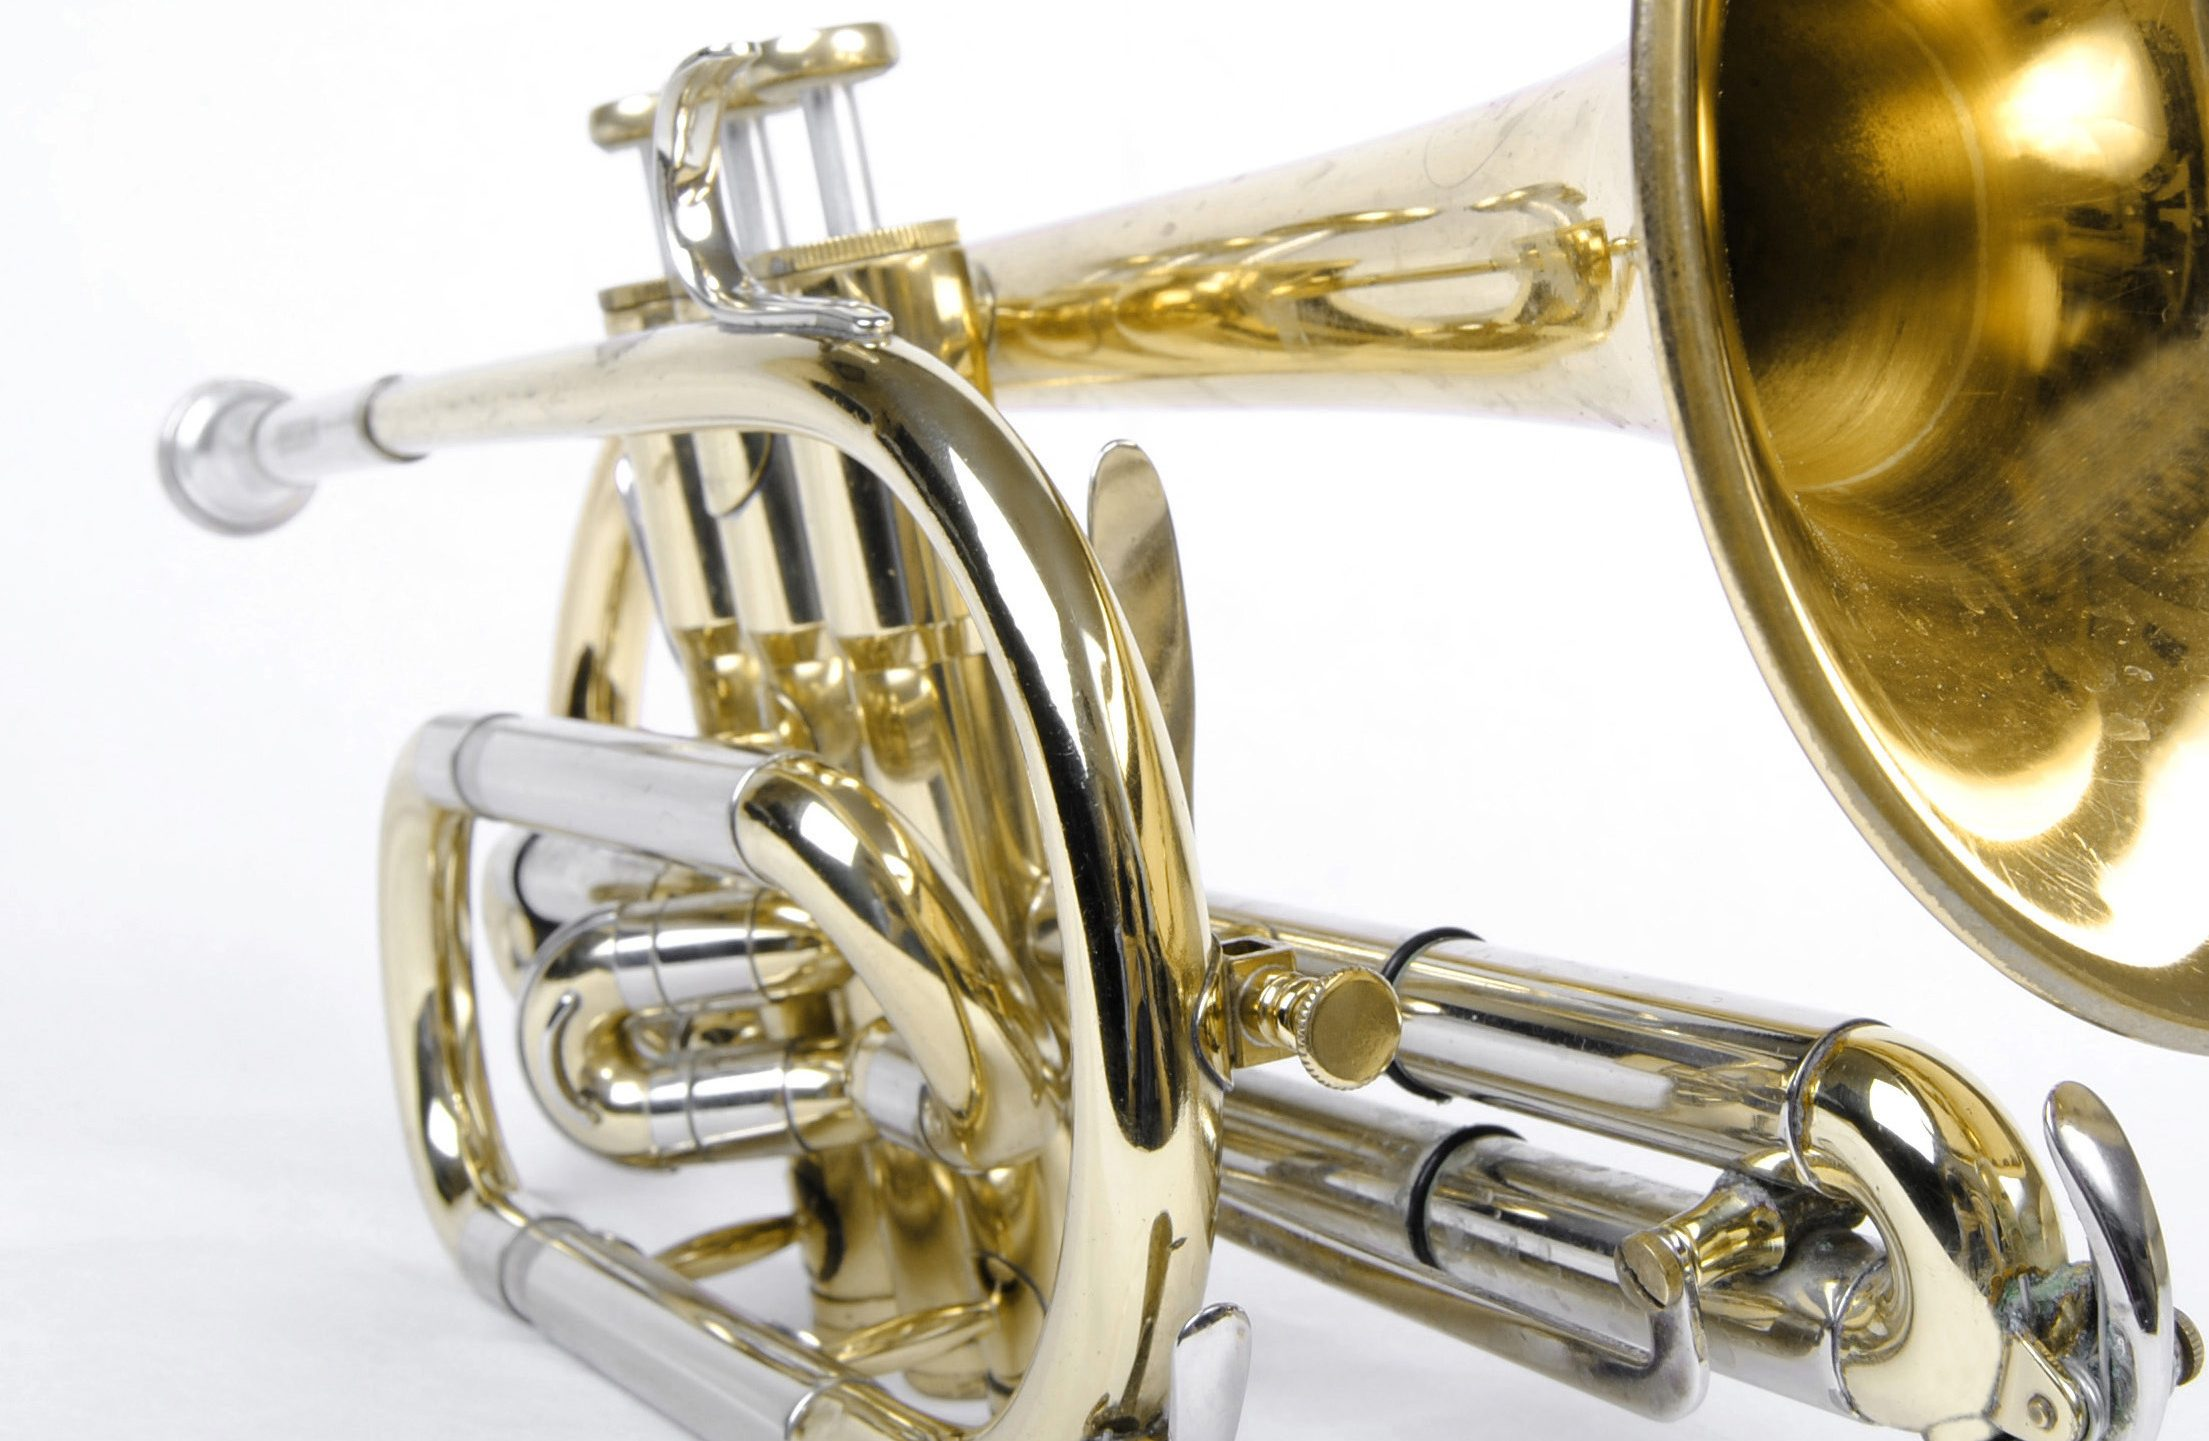 New Durable Stylish Brass Cooper Horn Mouth Mouthpiece Replacement Vbest life Durable Horn Mouthpiece